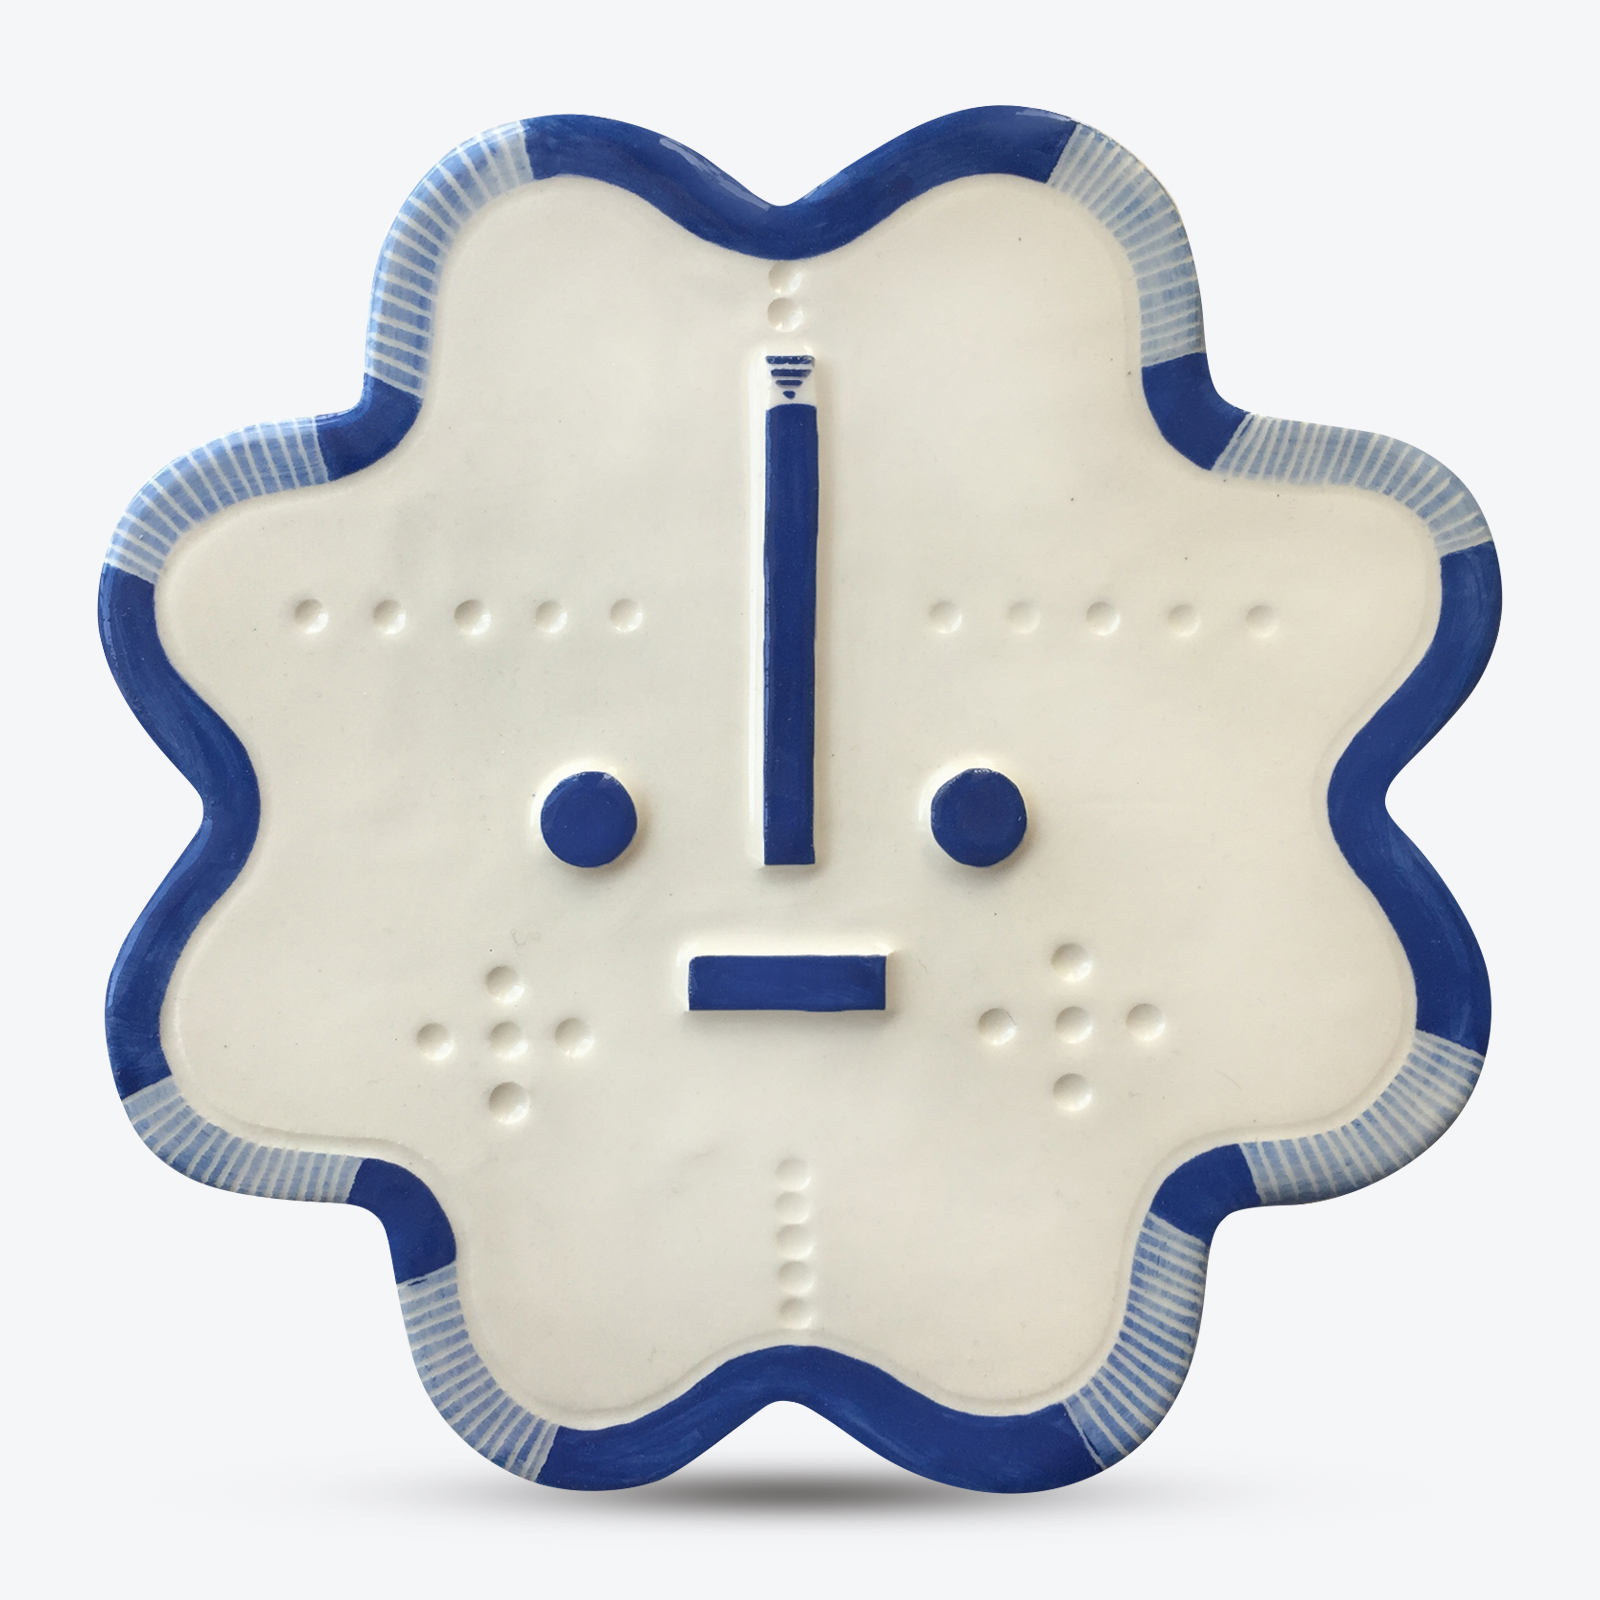 Carmalita Songsung Blue Ceramic Face Wall Hanging By Louise Kyriakou 00.jpg